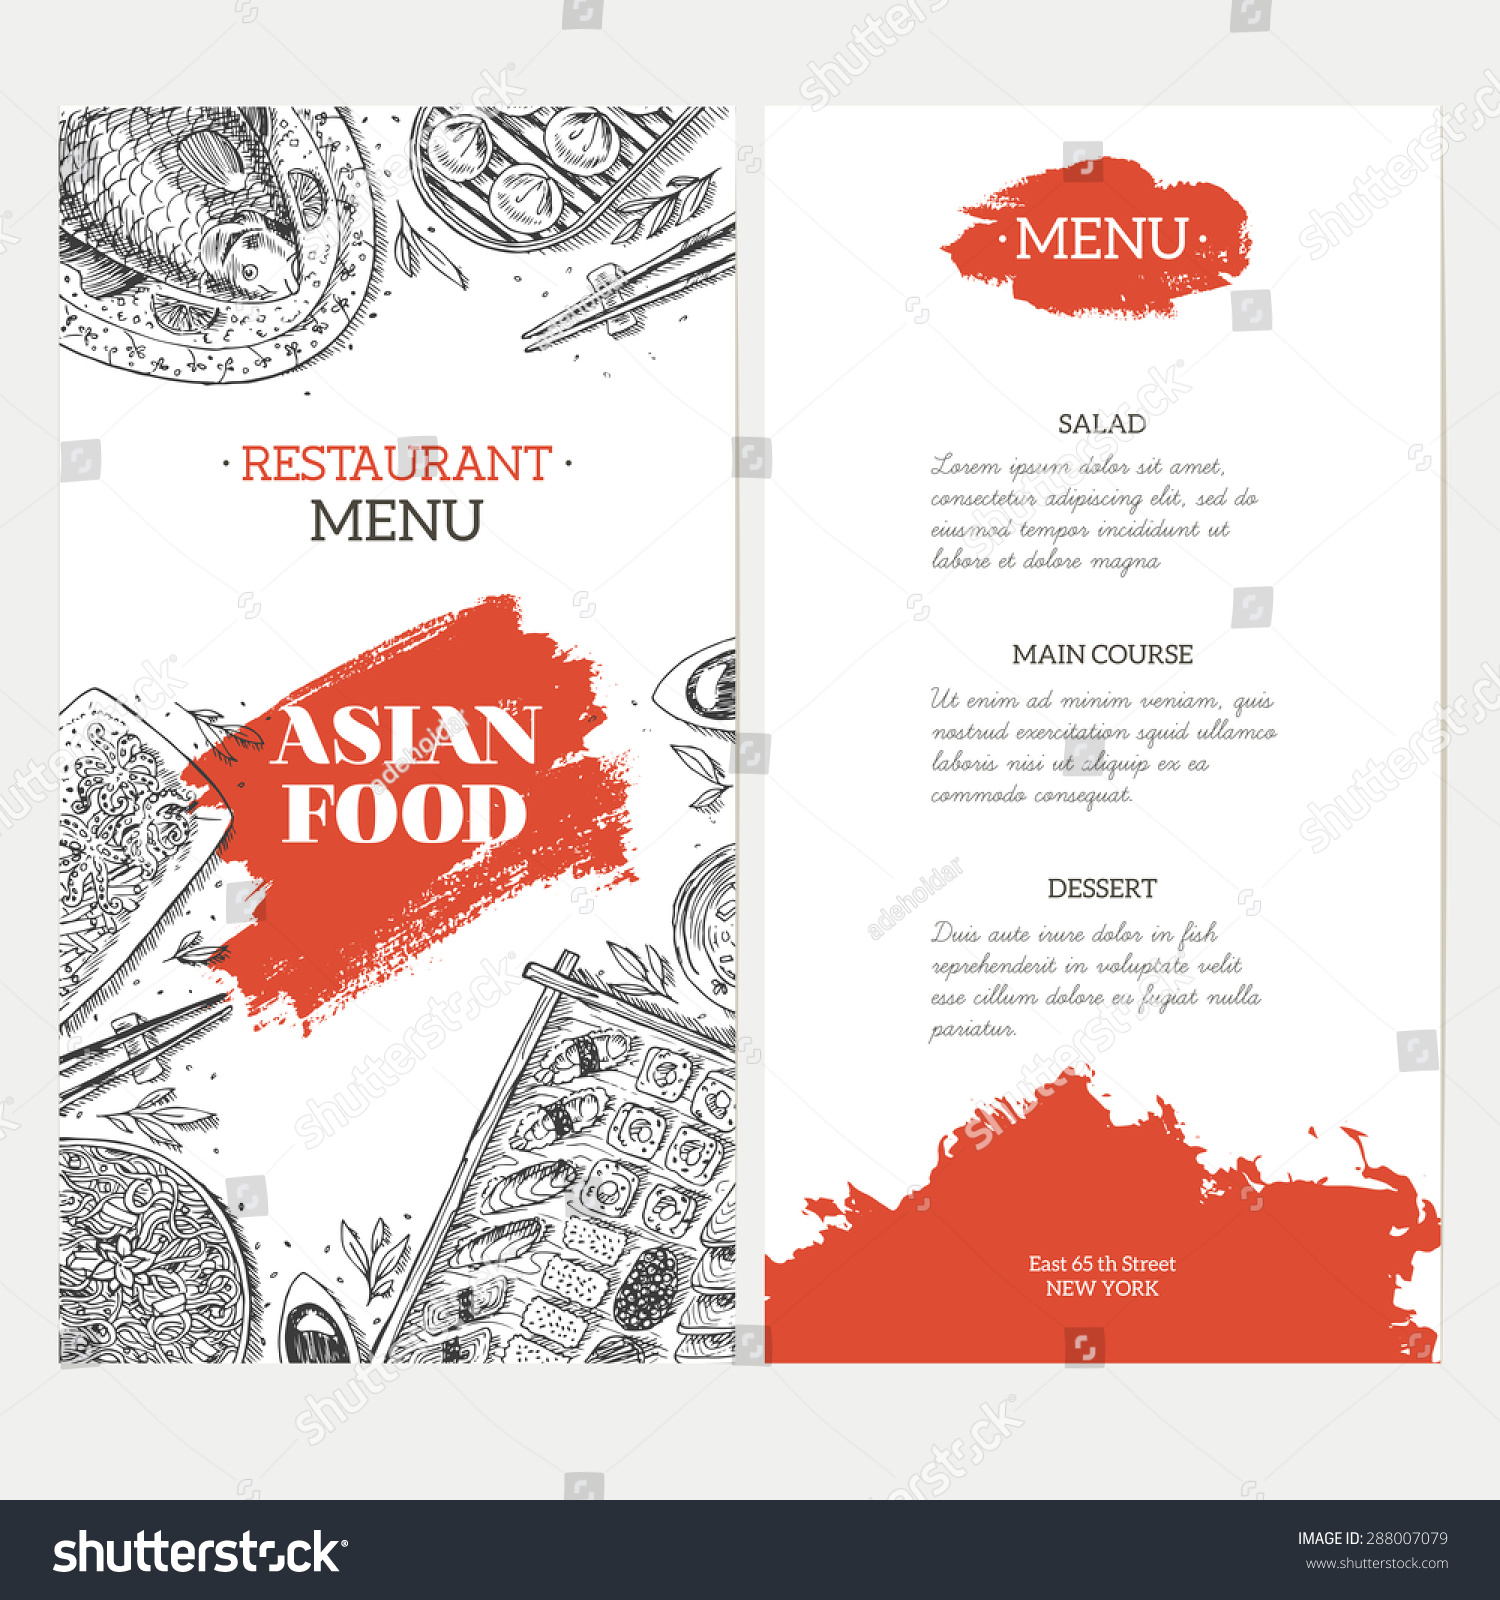 Asian food menu template linear graphic stock vector for Asia asian cuisine menu